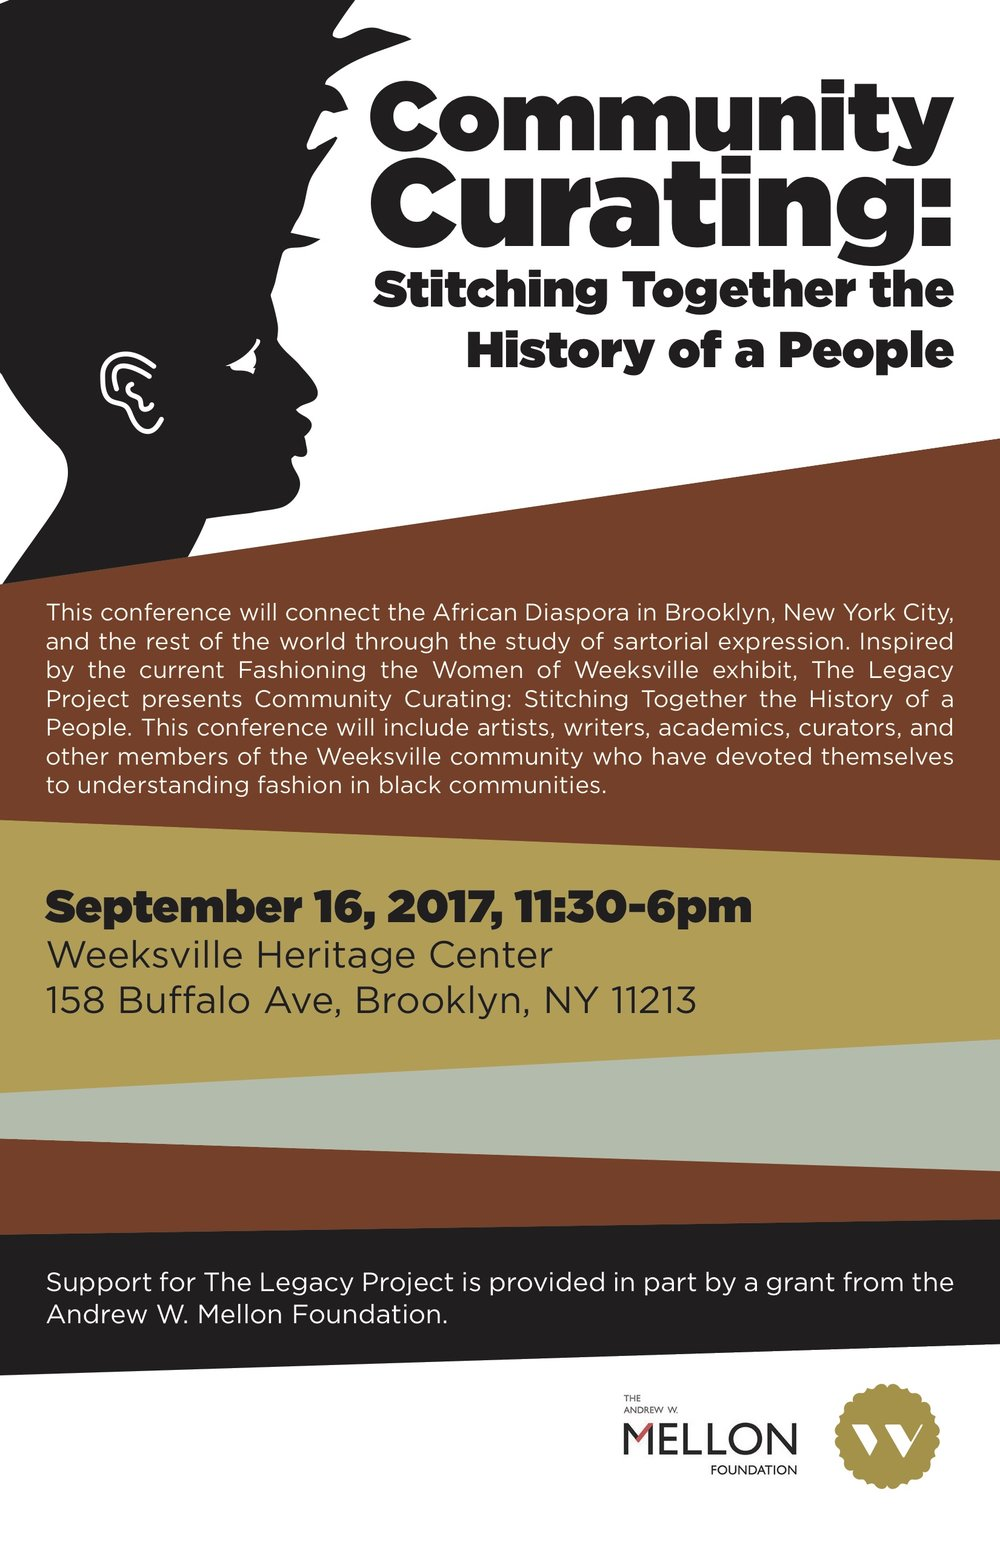 - Inspired by our current Fashioning the Women of Weeksville exhibition, The Legacy Project presents